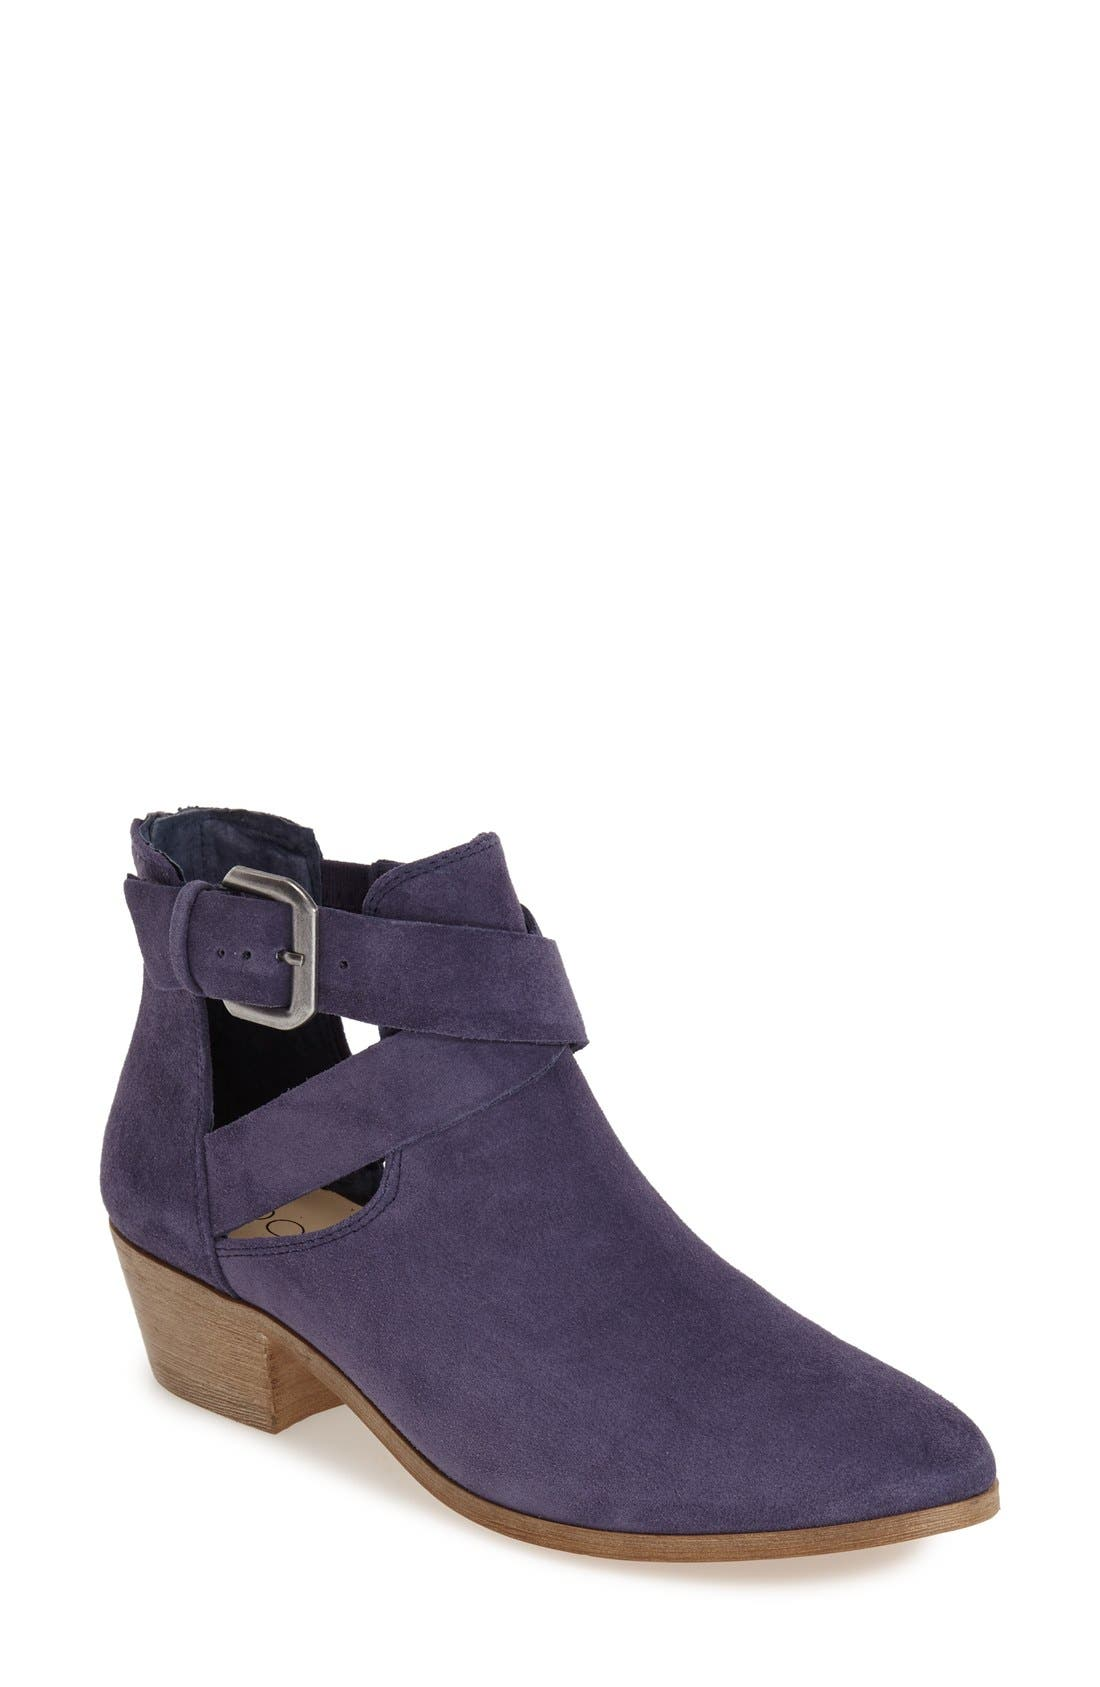 Main Image - Sole Society 'Evie' Open Side Bootie (Women)